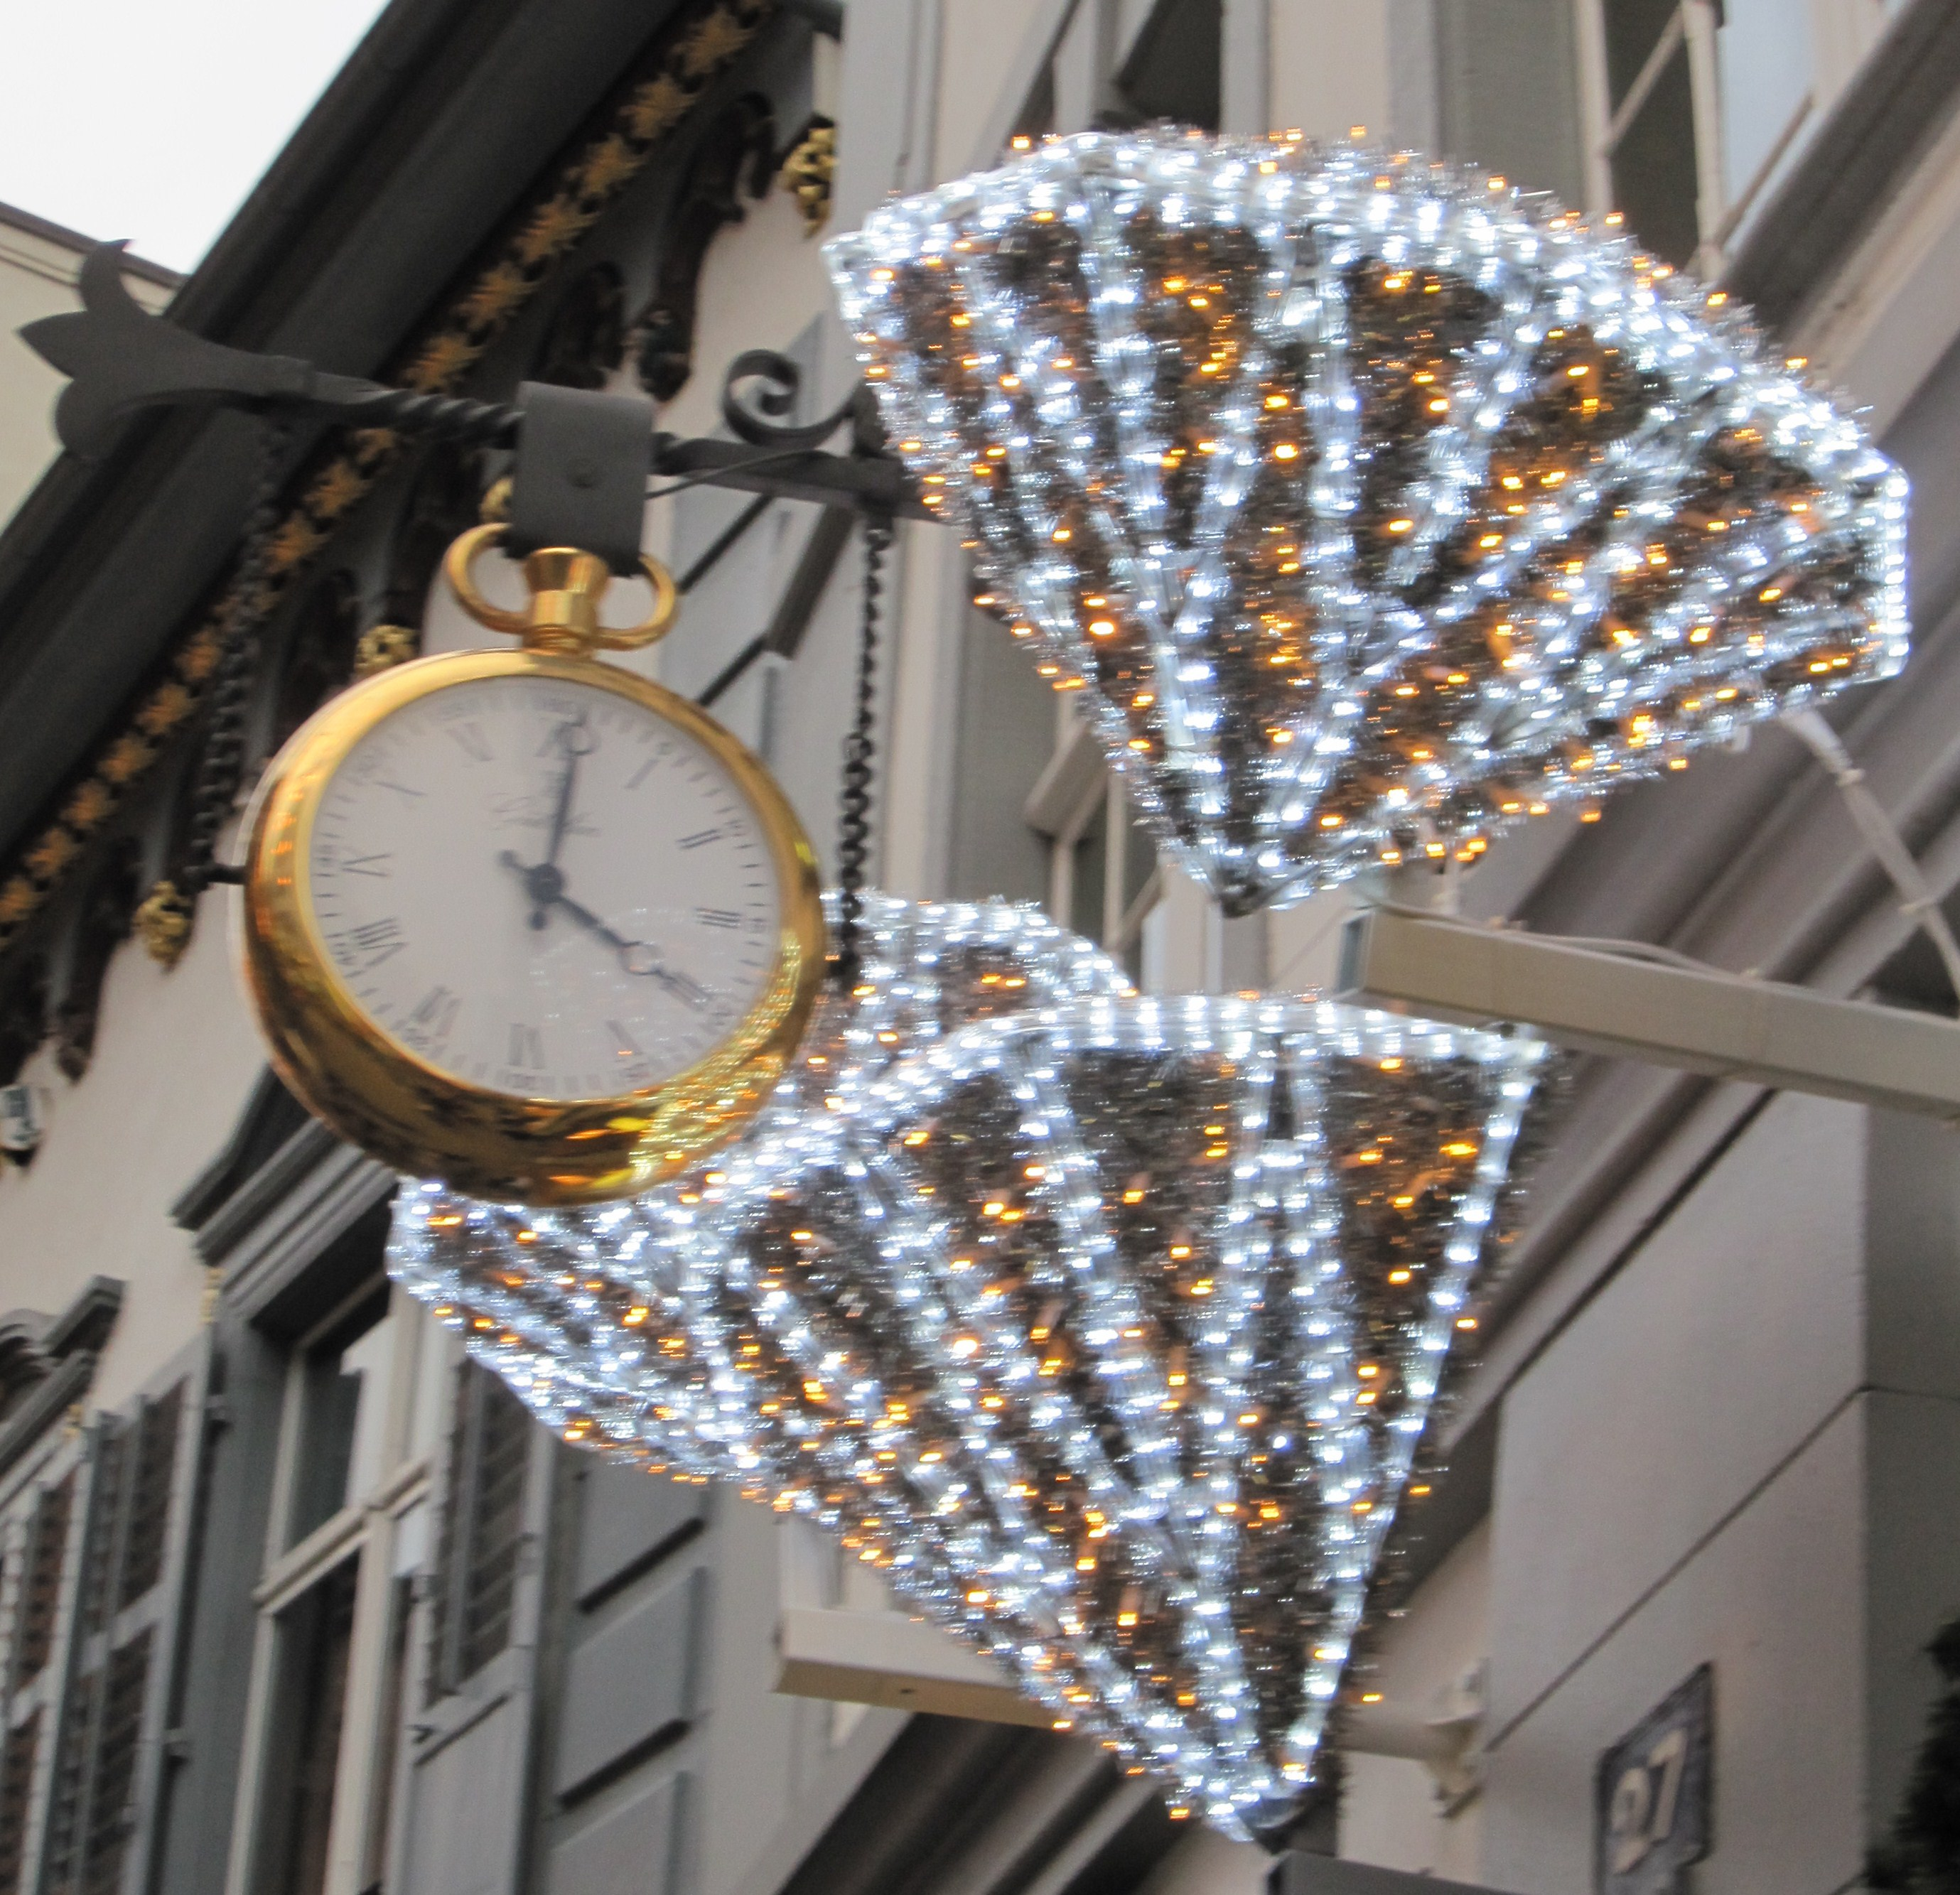 Christmas in Basel